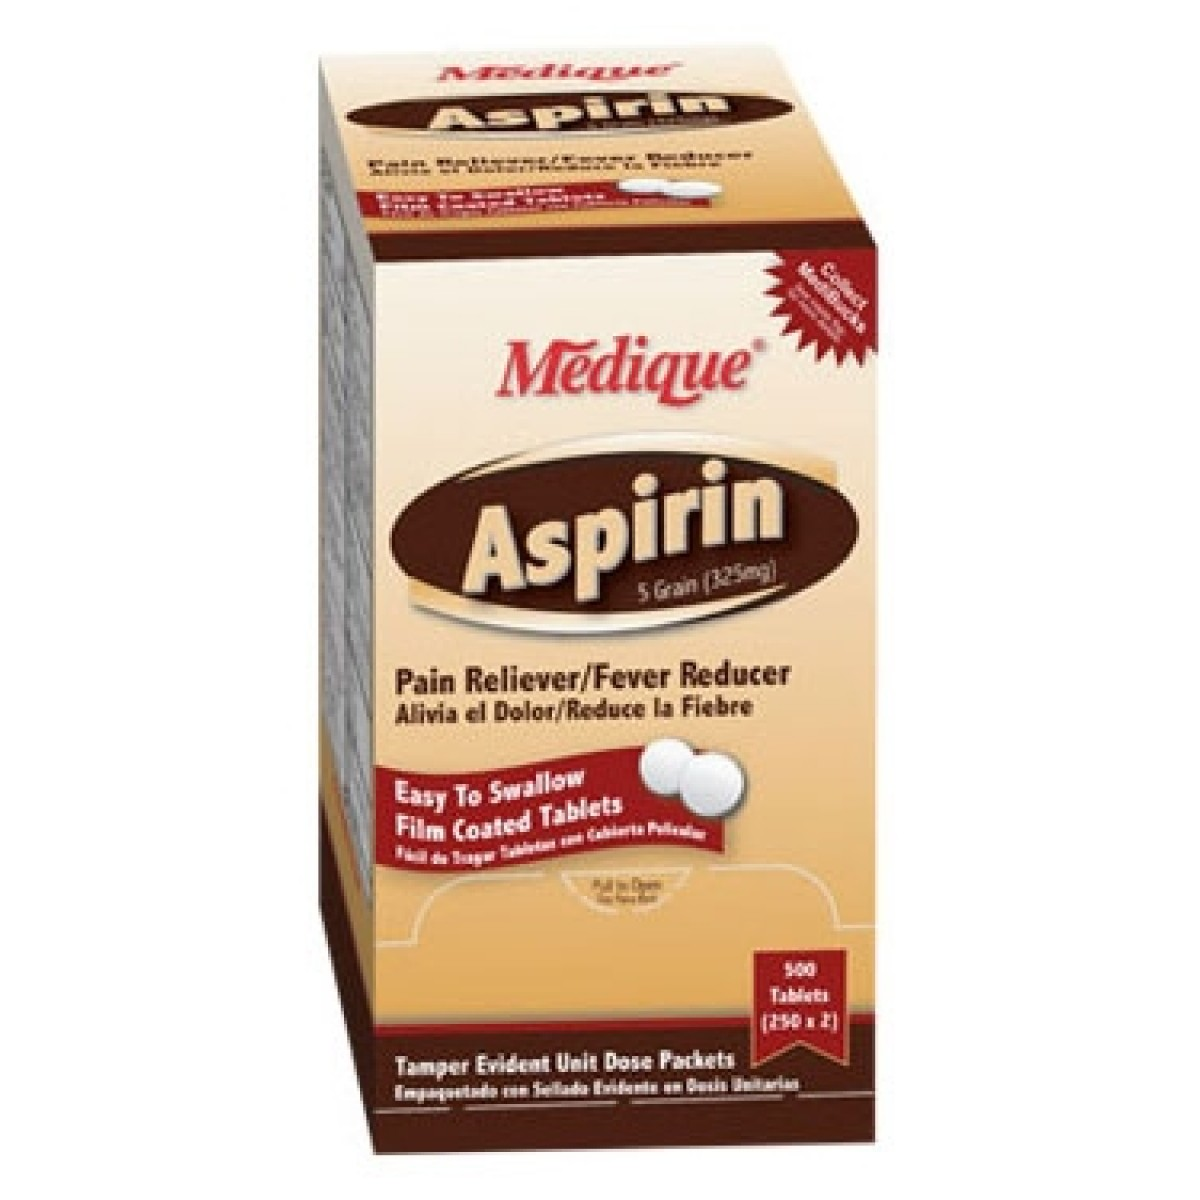 preparation aspirin essay The synthesis of aspirin synthesis of aspirin and oil of wintergreen we will write a custom essay sample on any topic specifically for you for only $1390/page.